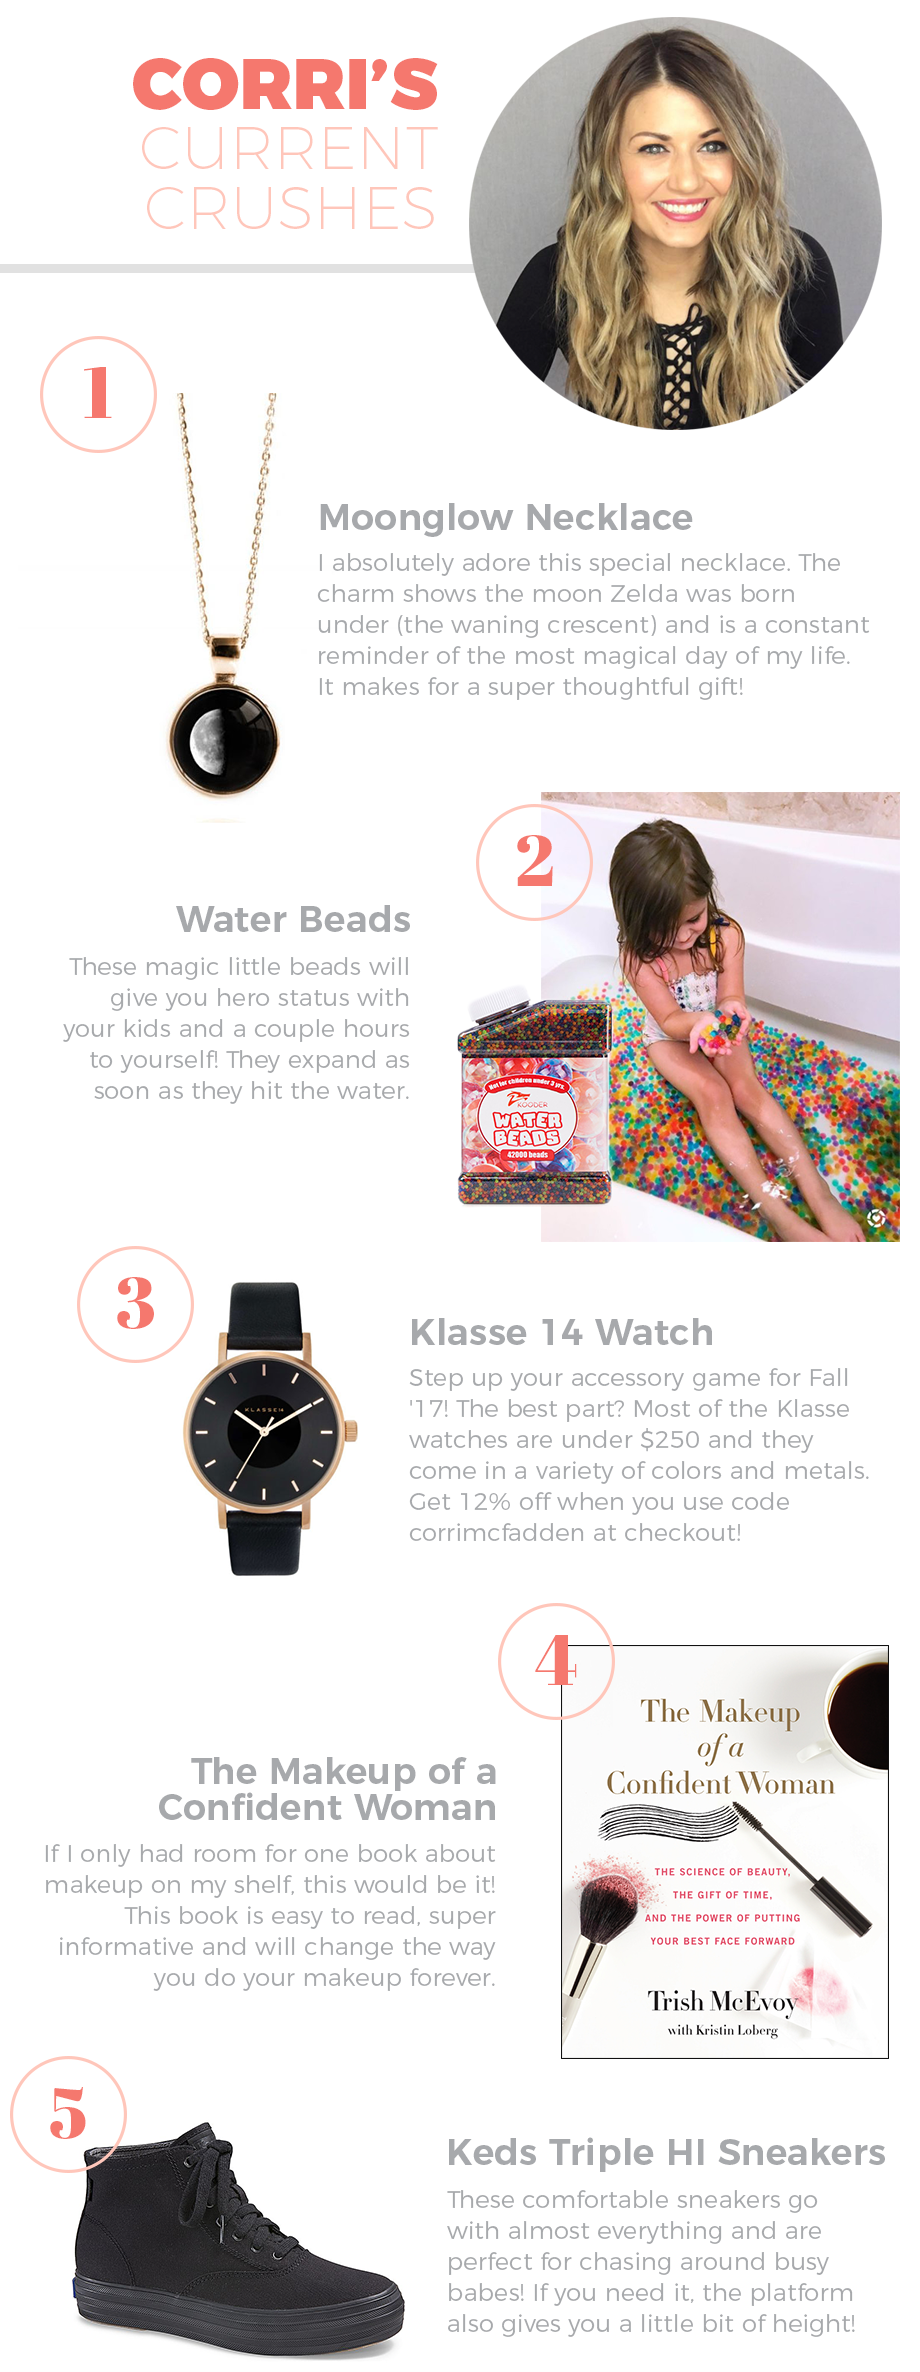 Currently crushing on: Moonglow, Water Beads and More!